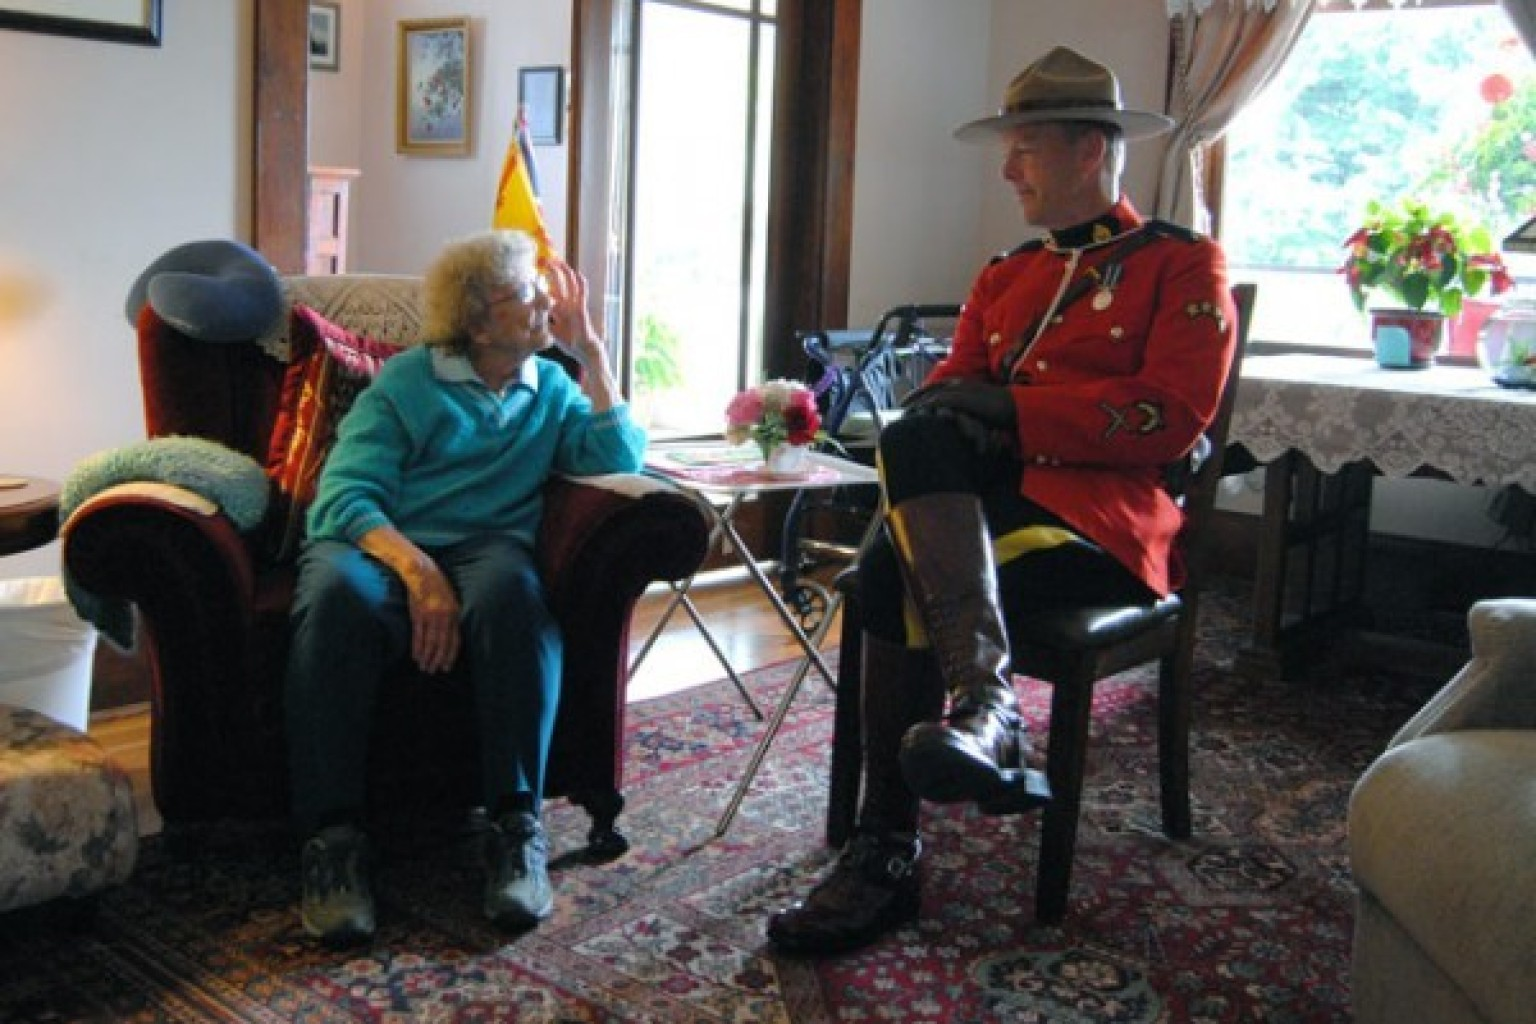 Technology Management Image: Jenny Stewart's Mountie Dream Comes True 78 Years Later